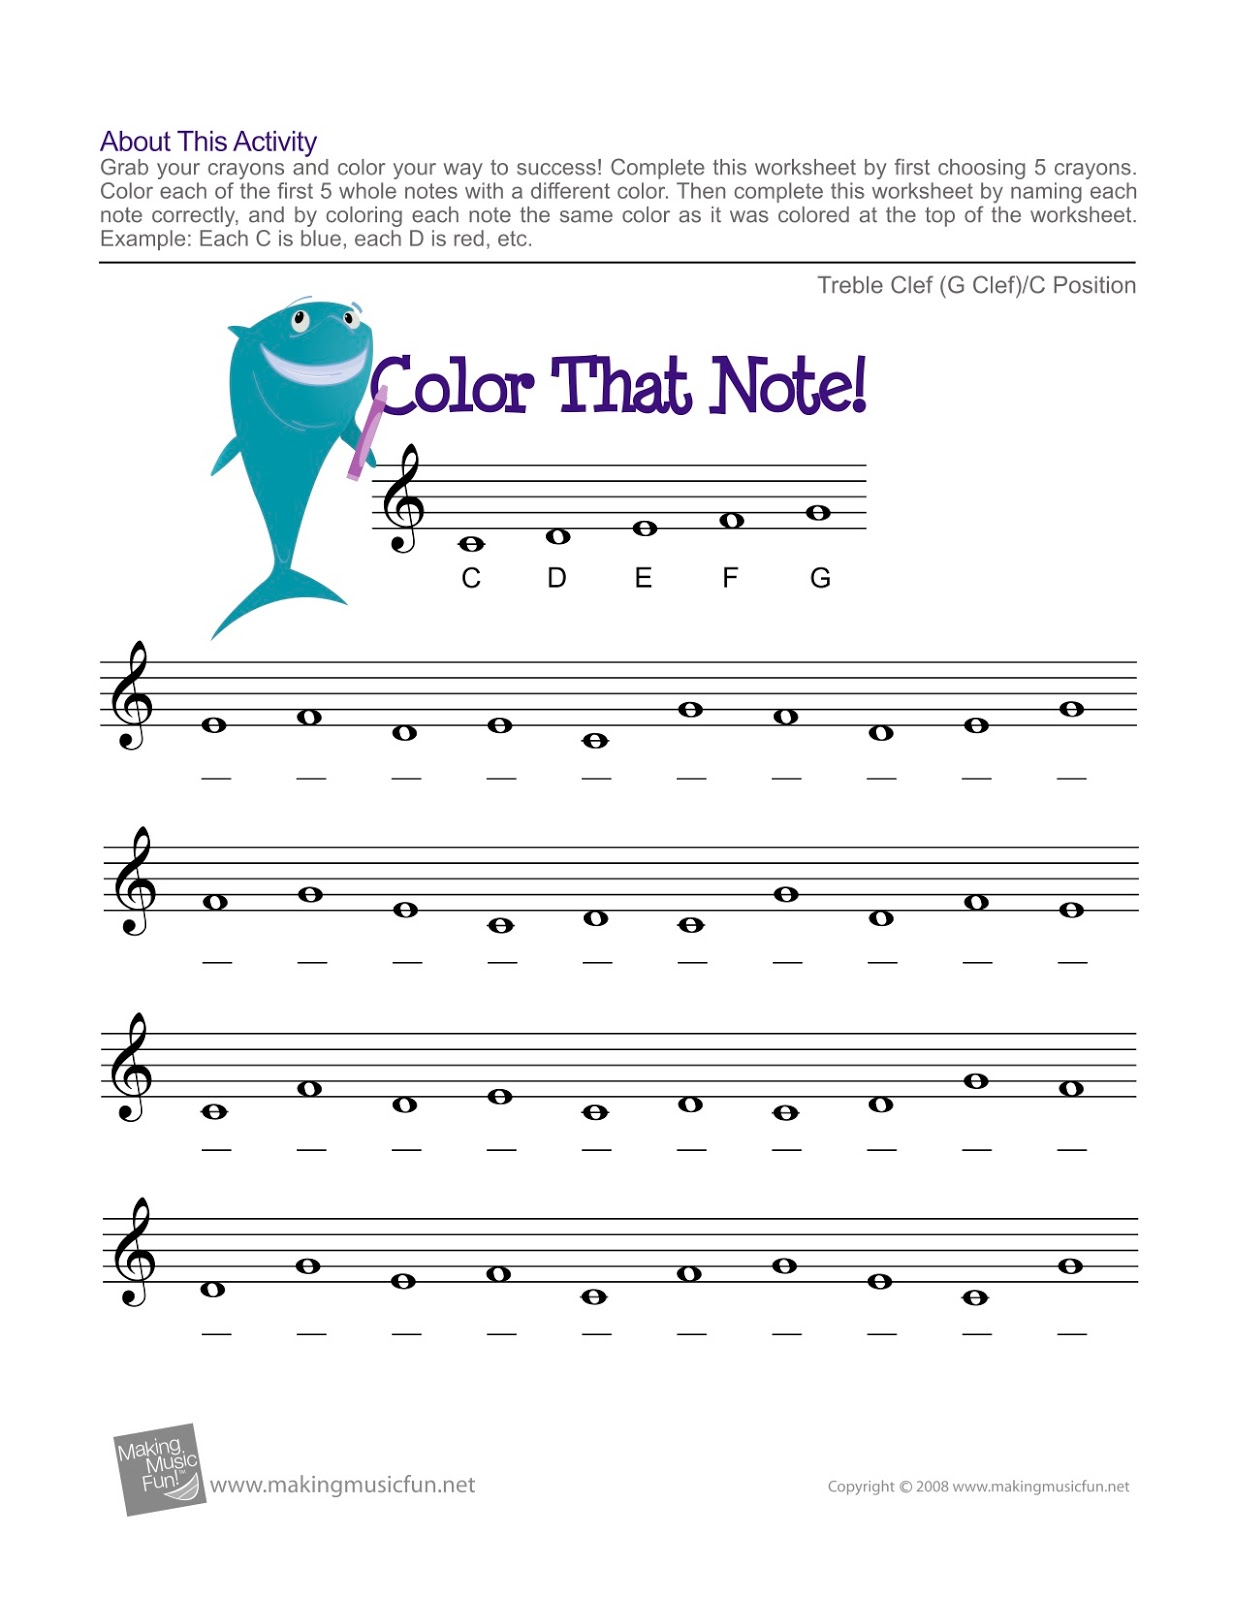 Harris Invictus Music Blog Videos And Worksheets For